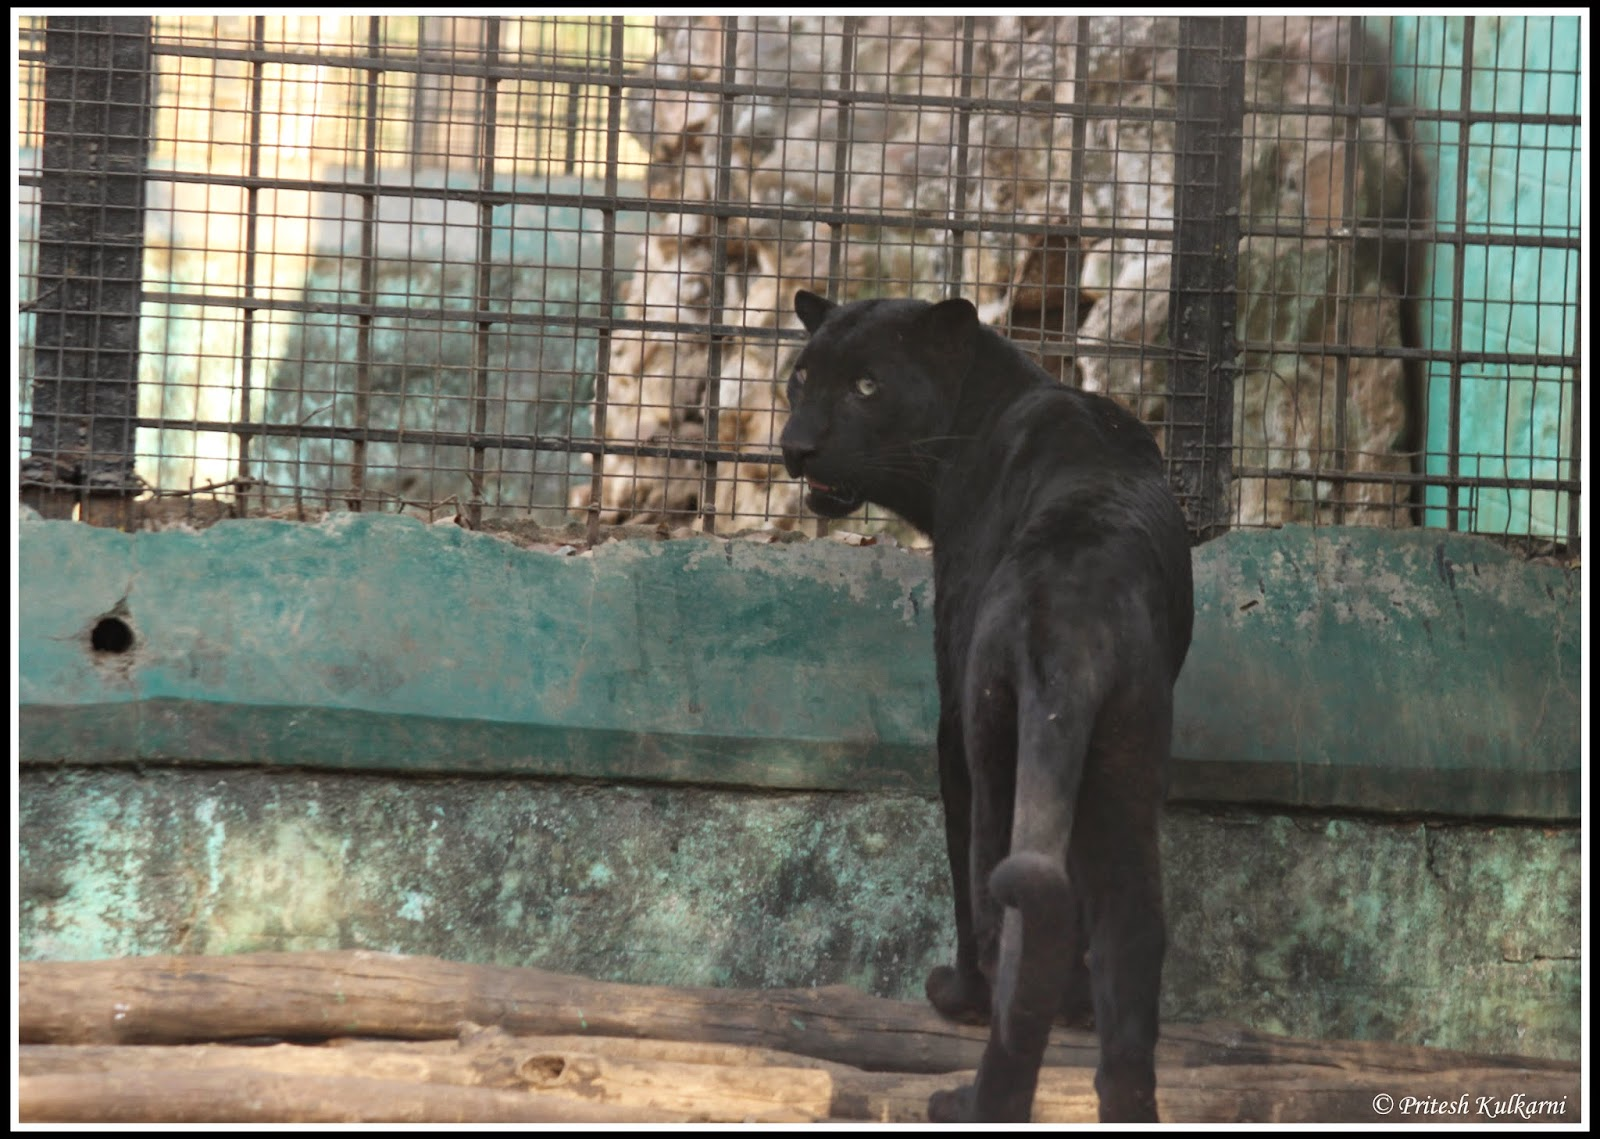 Captive Black Panther at Shimoga